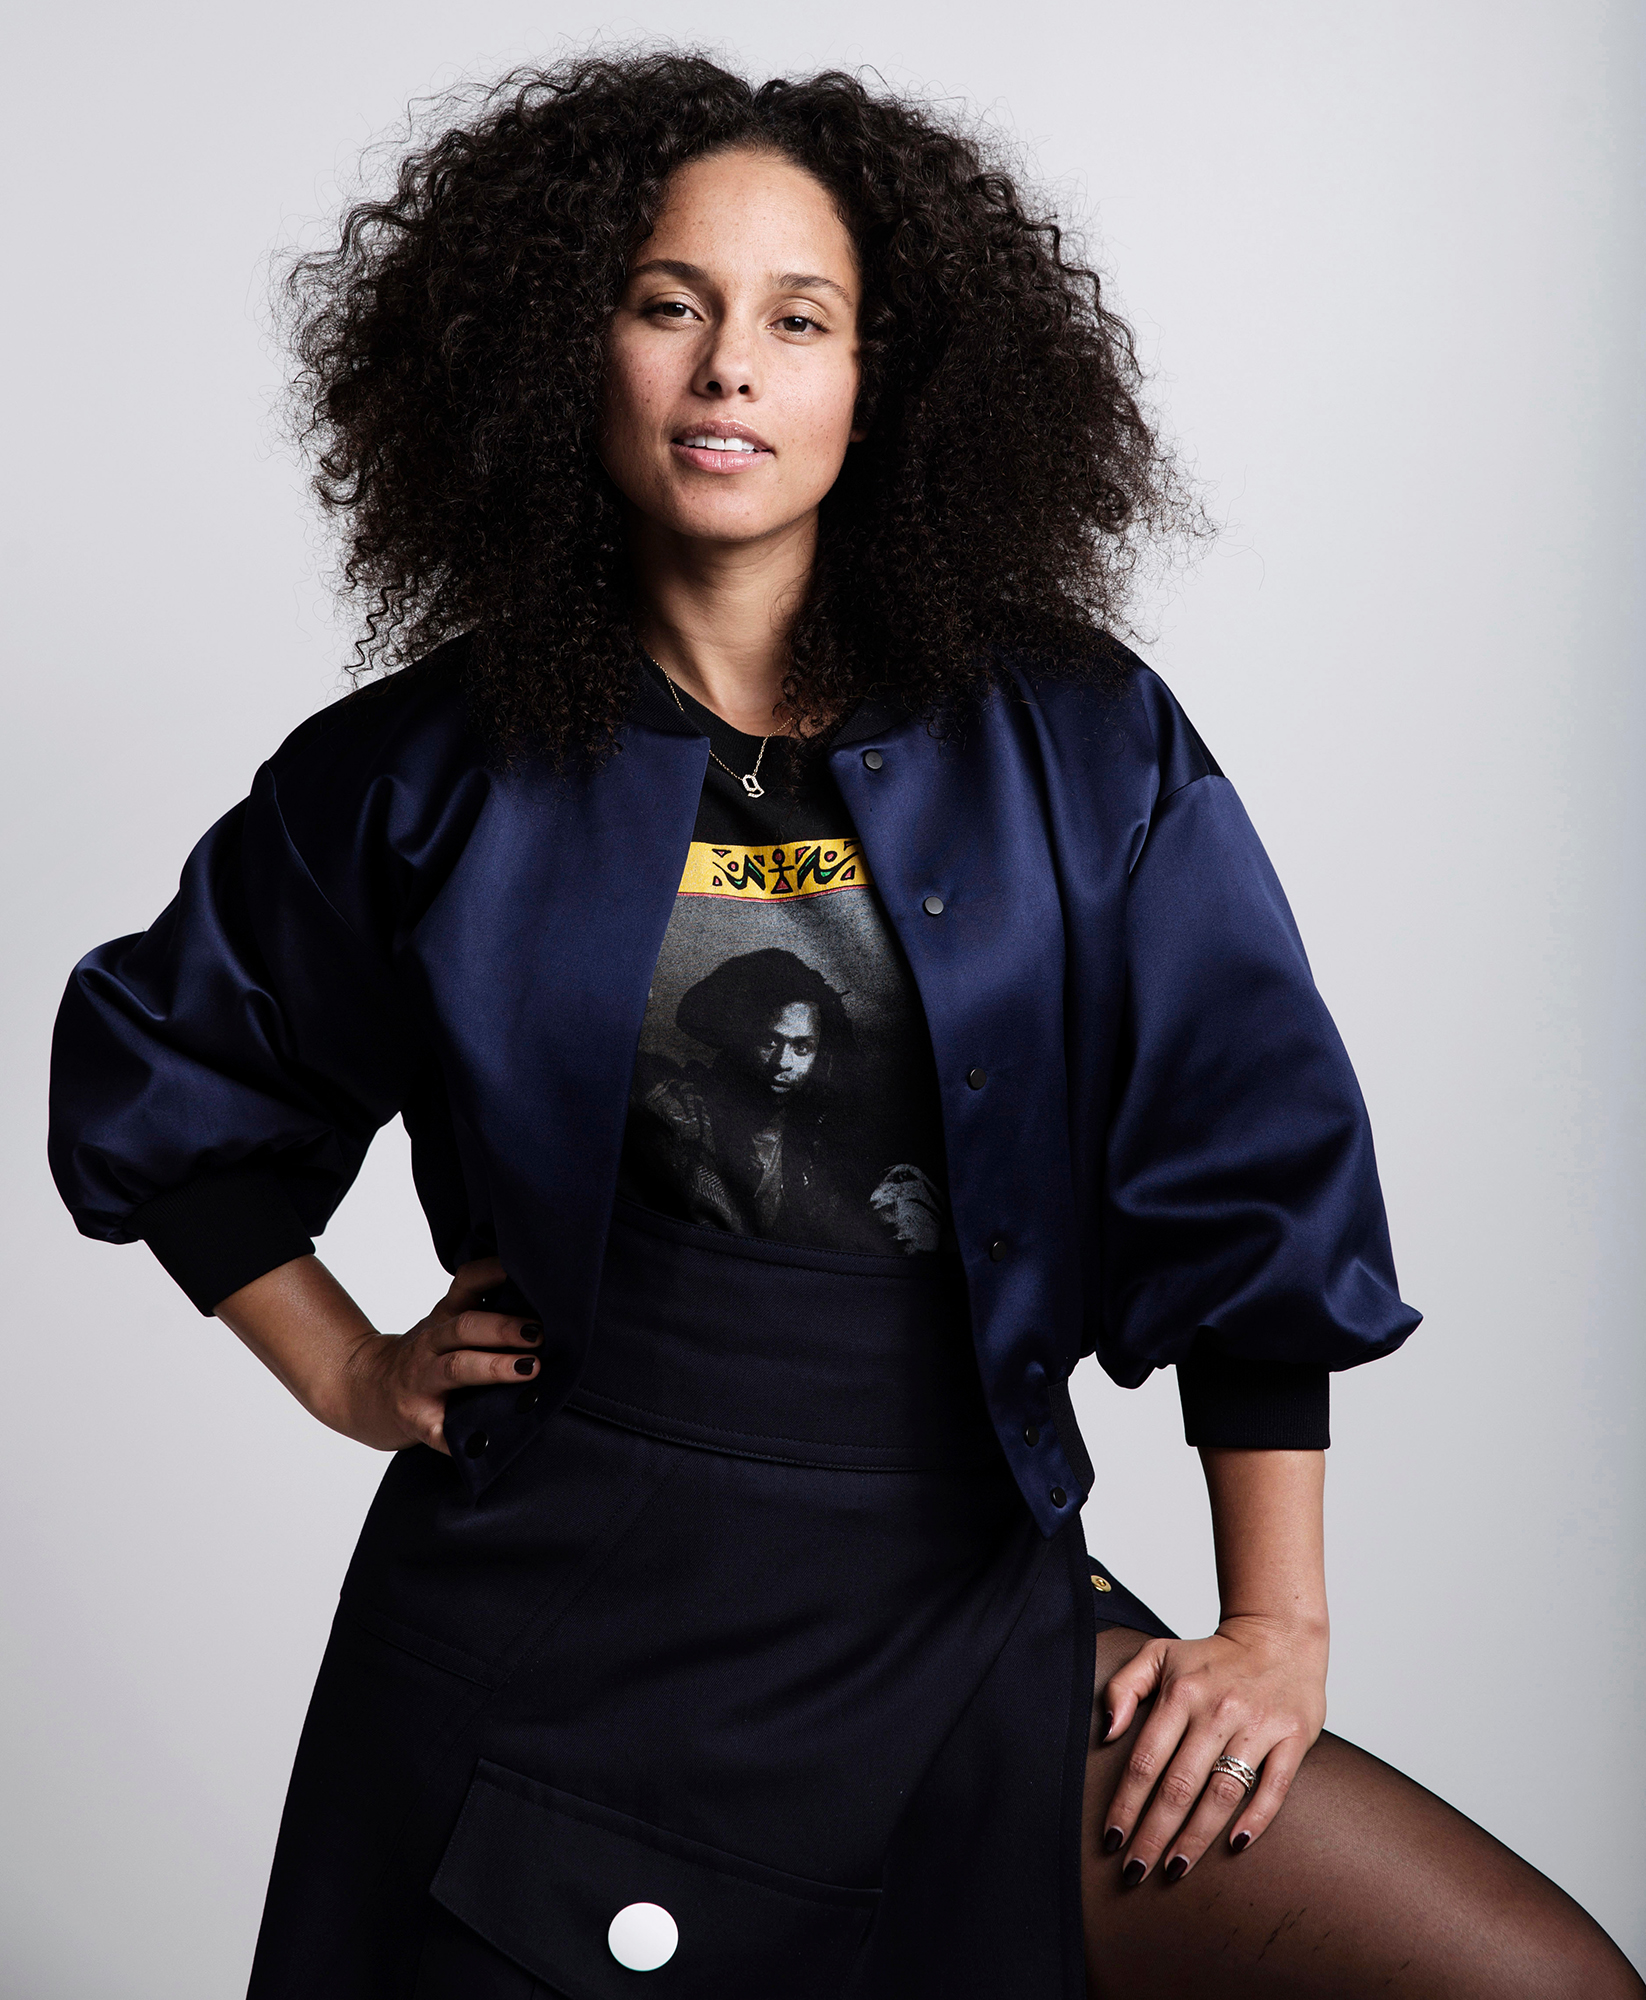 Alicia Keys Portrait Session, New York, USA - 2 Nov 2016